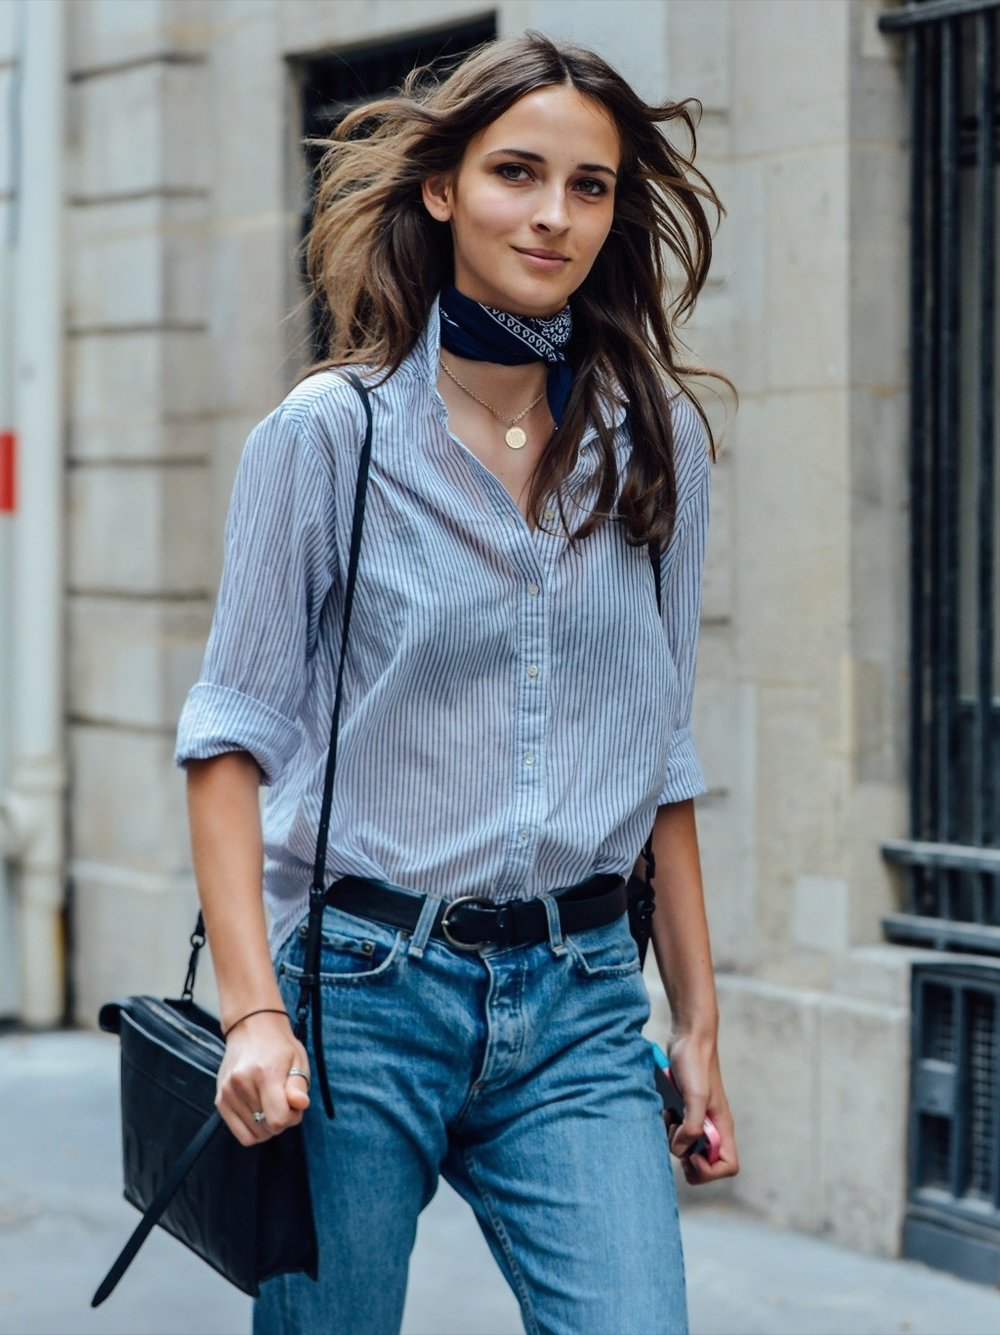 Denim Shirt - Source: Pinterest